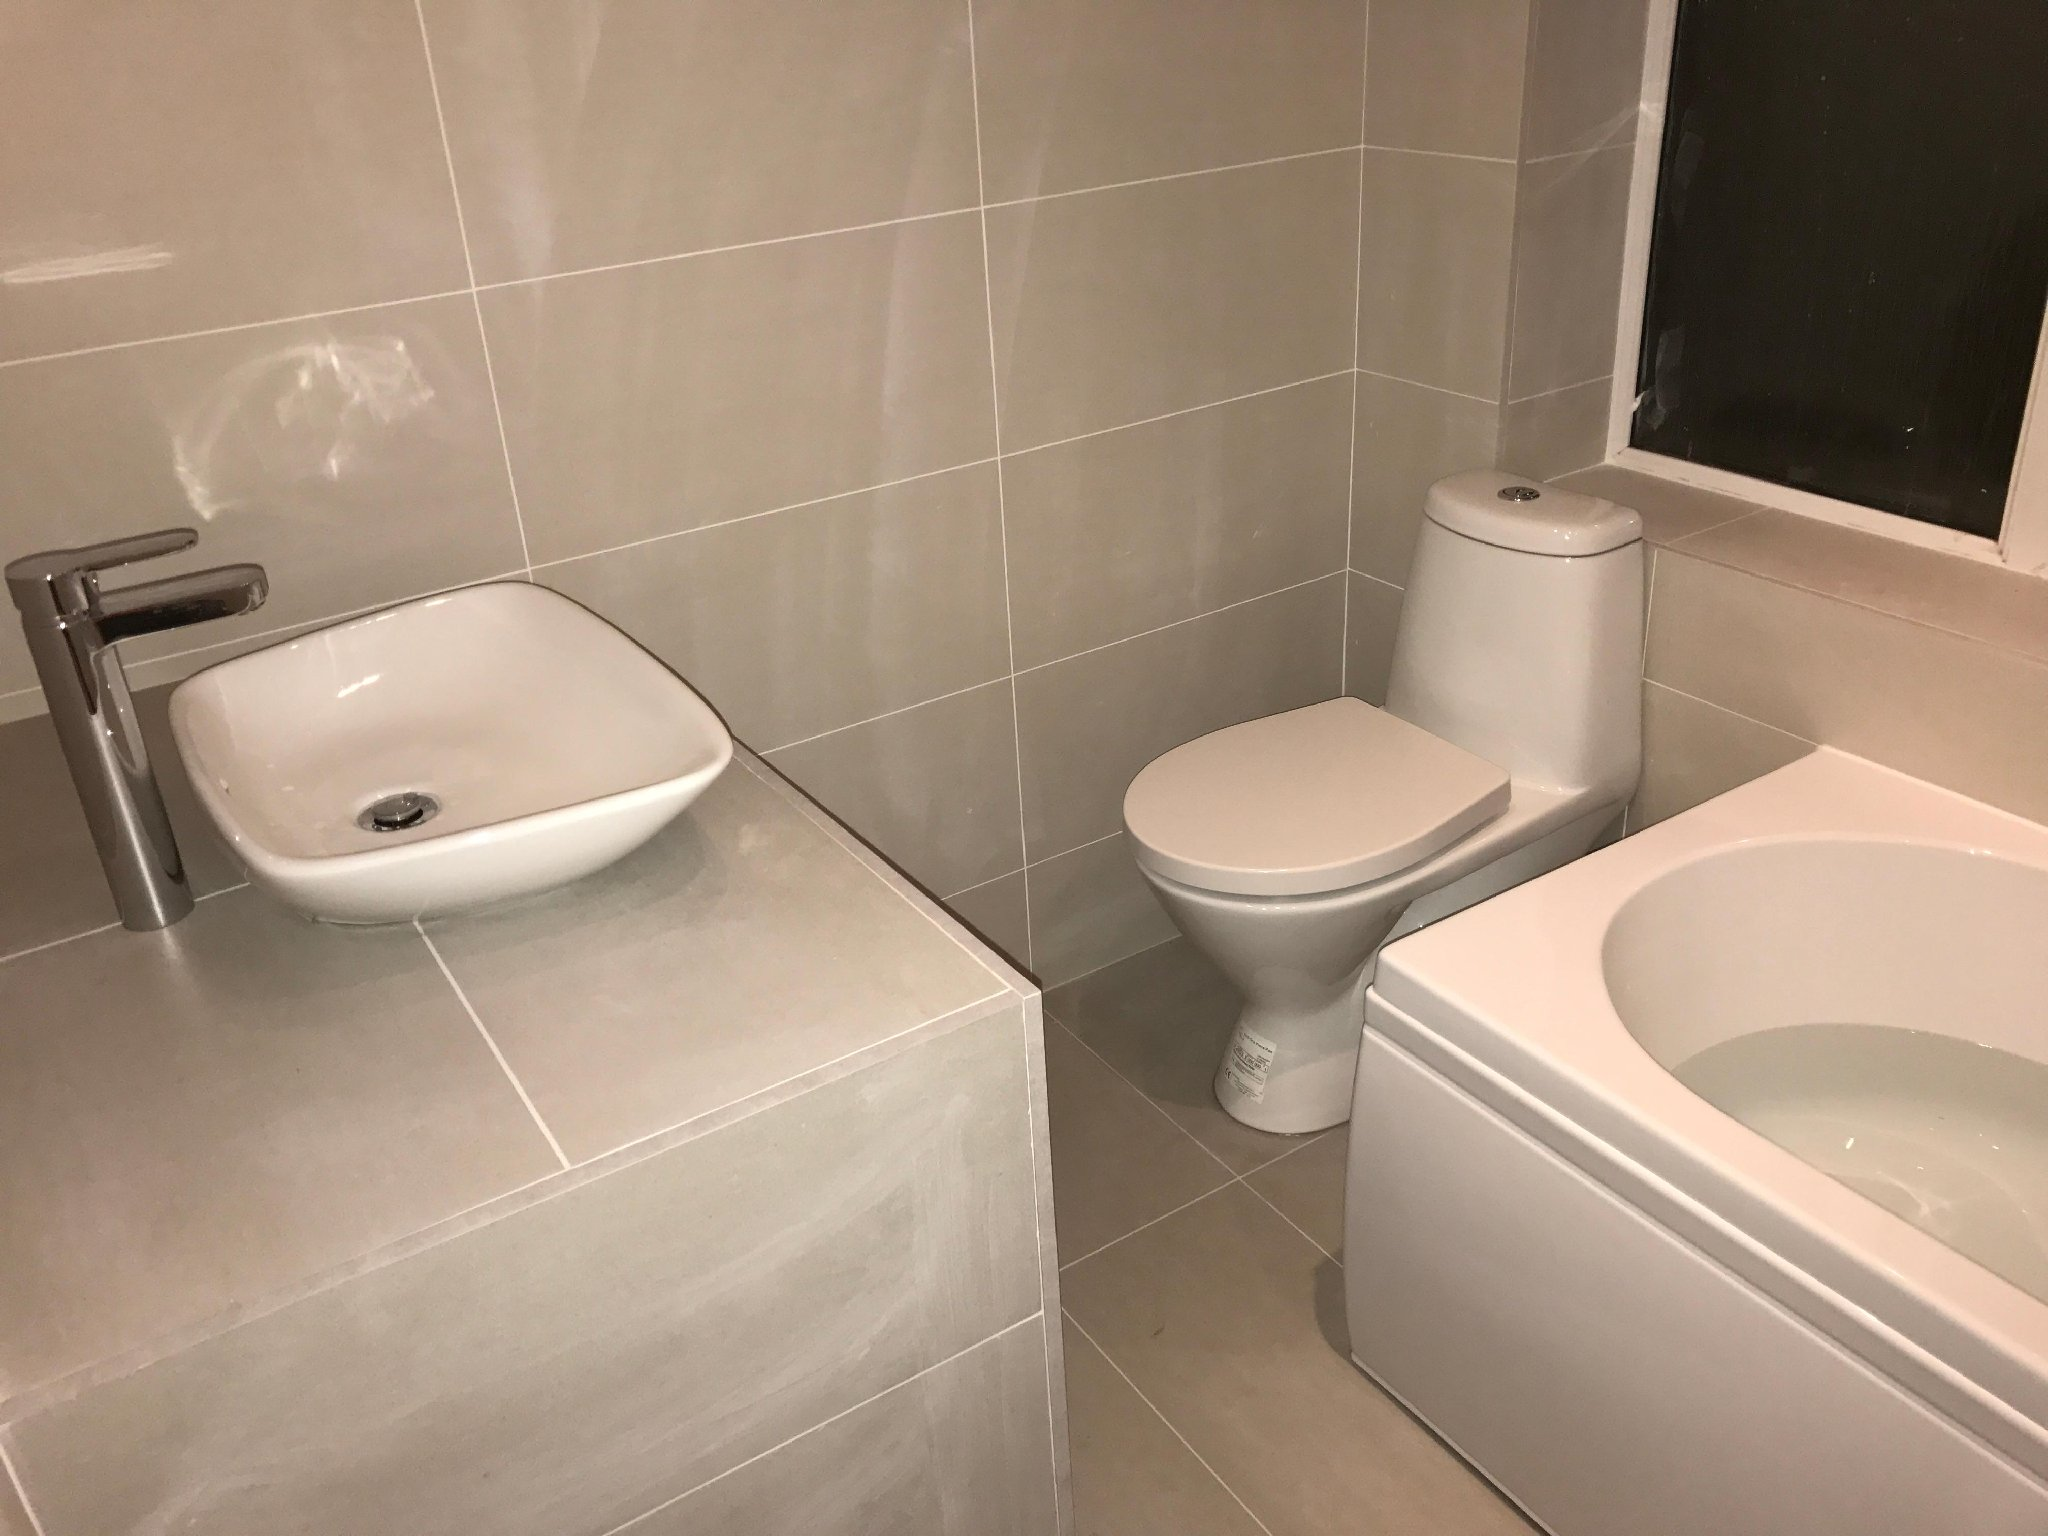 bathrooms supplied and fitted throughout Greater Manchester